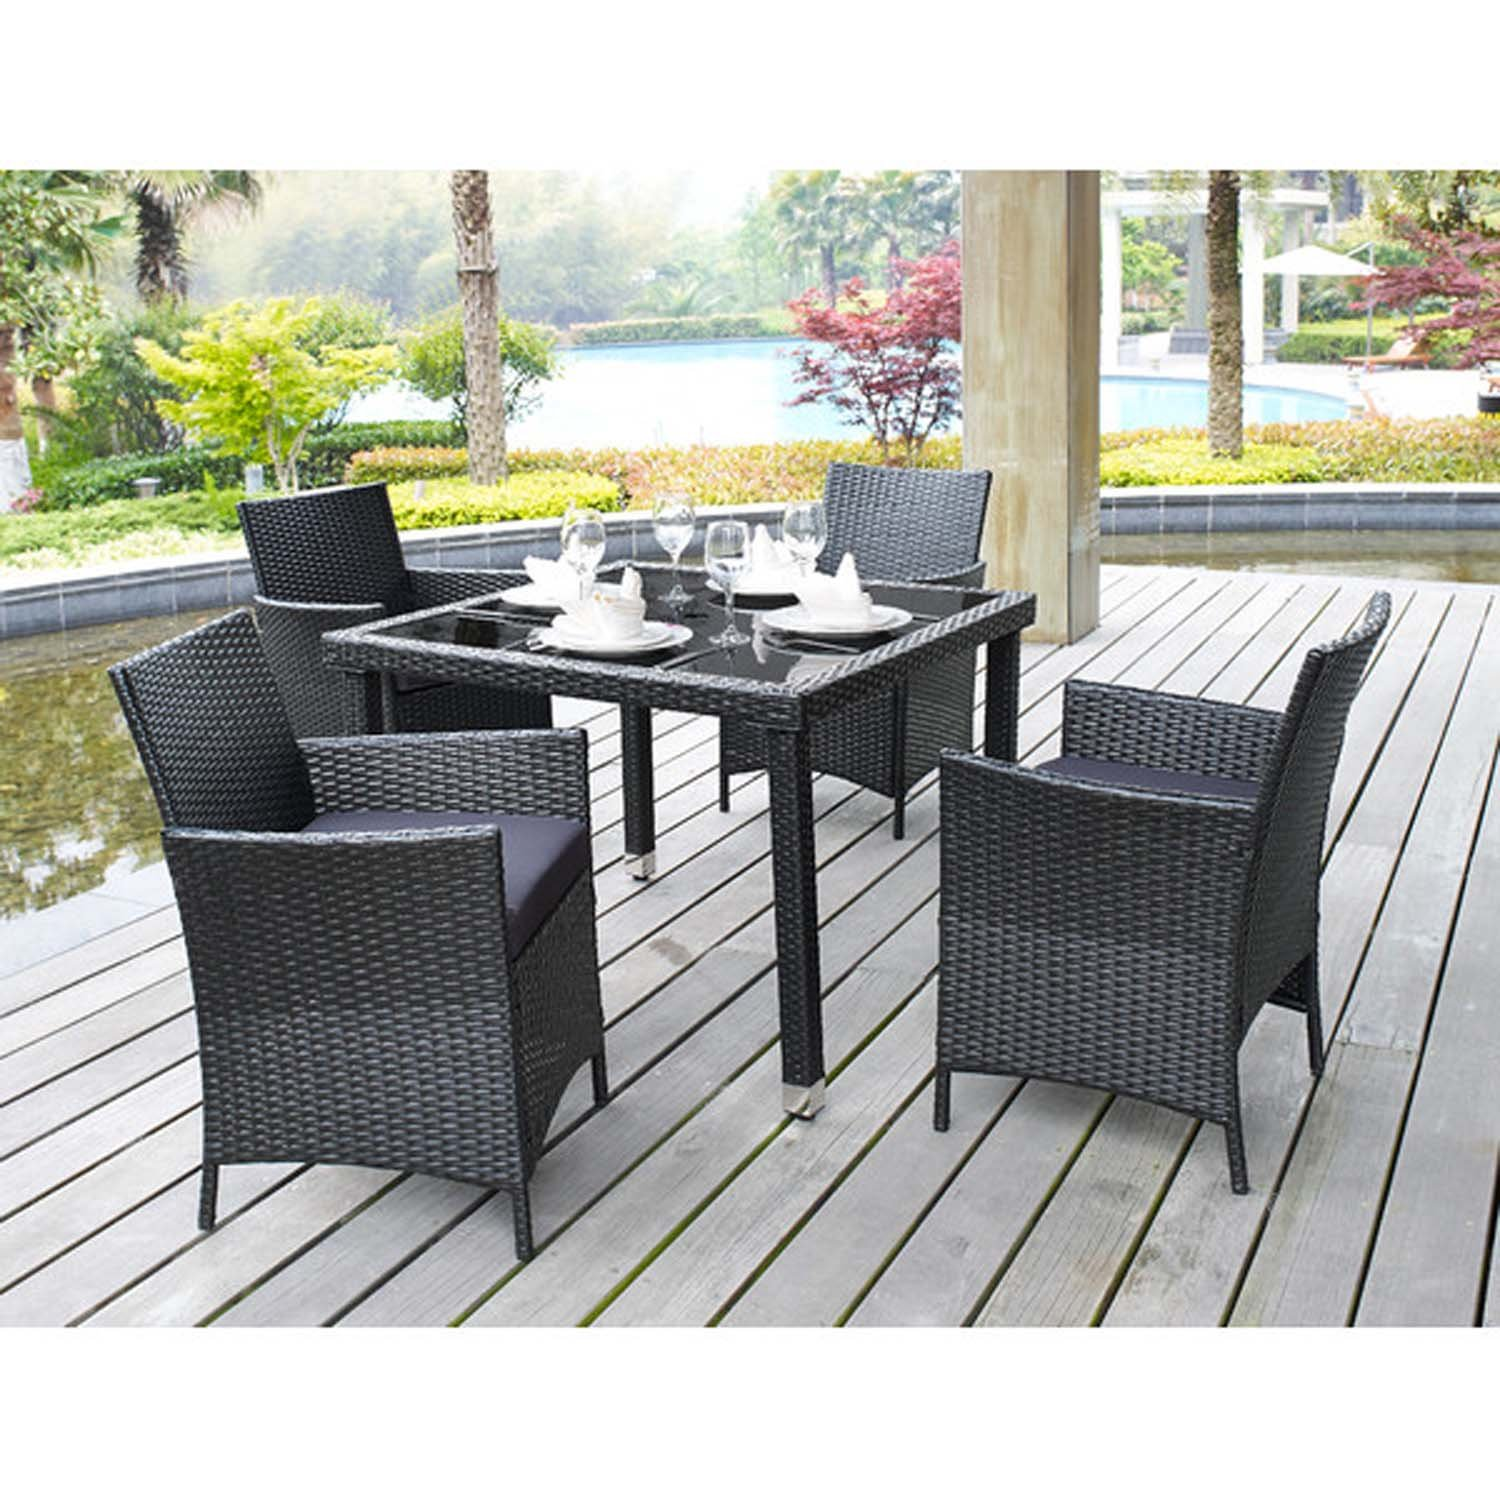 Amazon 5 Piece Outdoor Patio Dining Set with Cushions UV